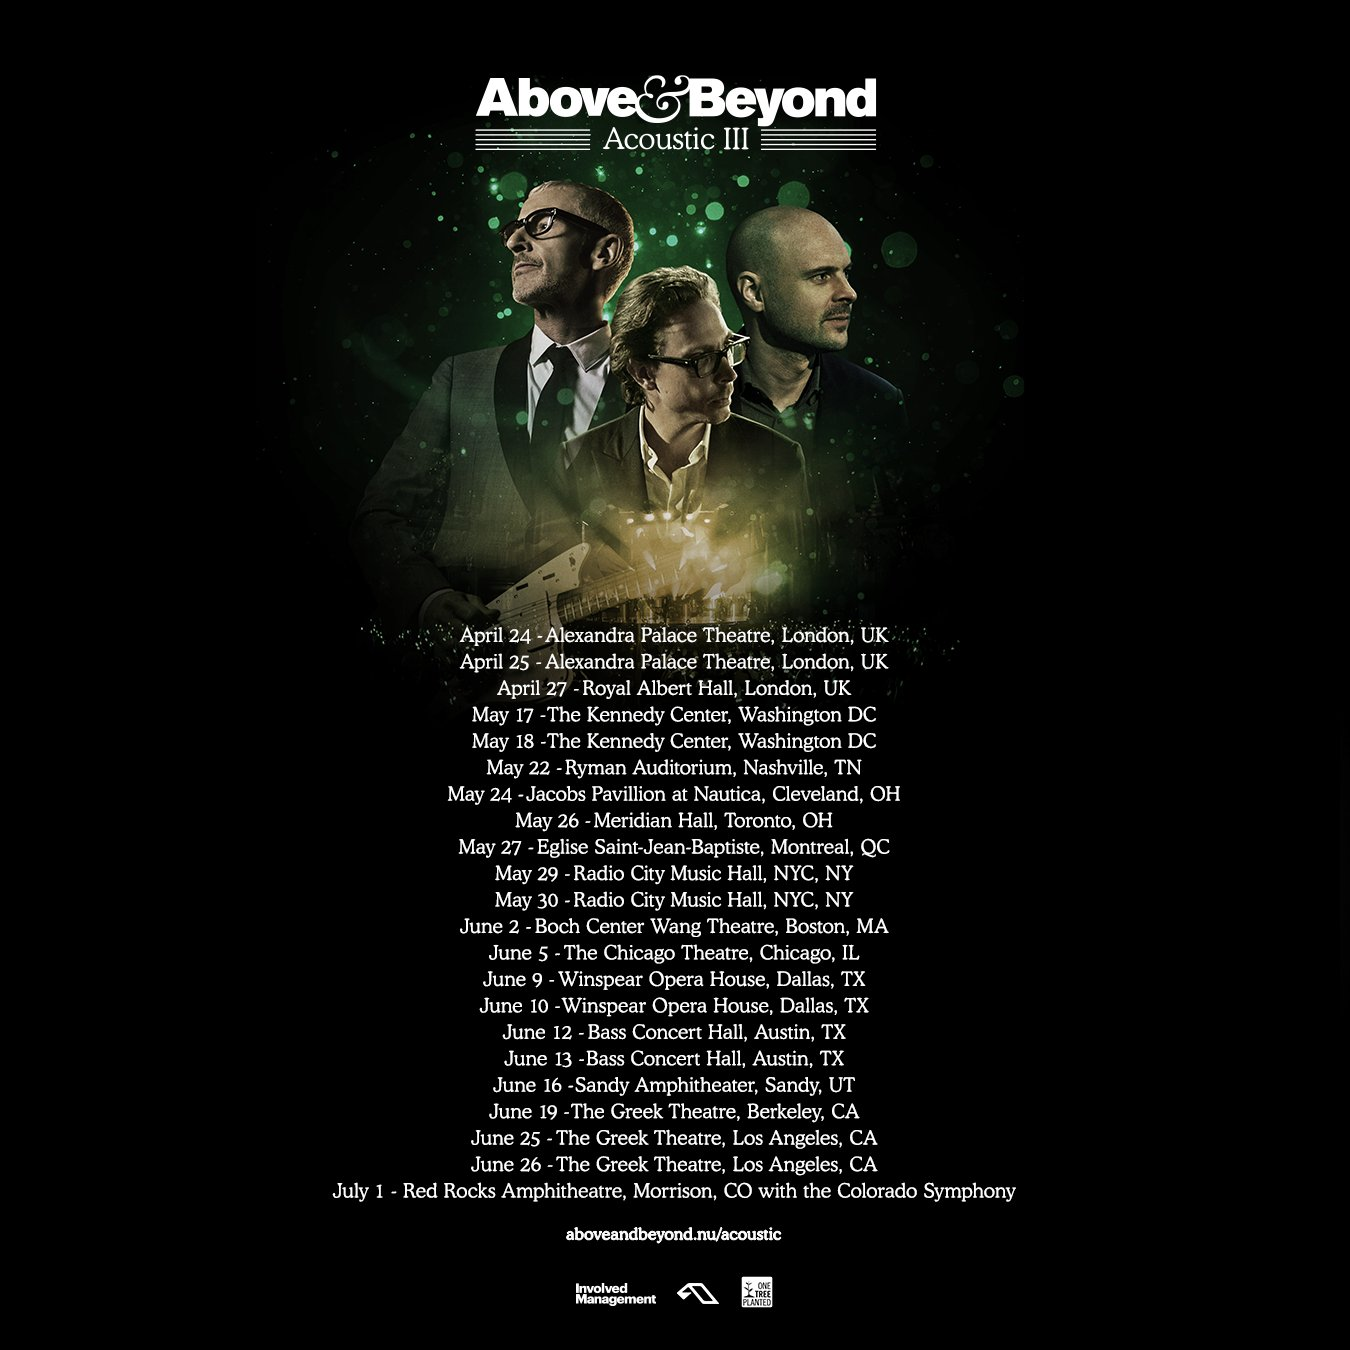 Above & Beyond Acoustic III Tour